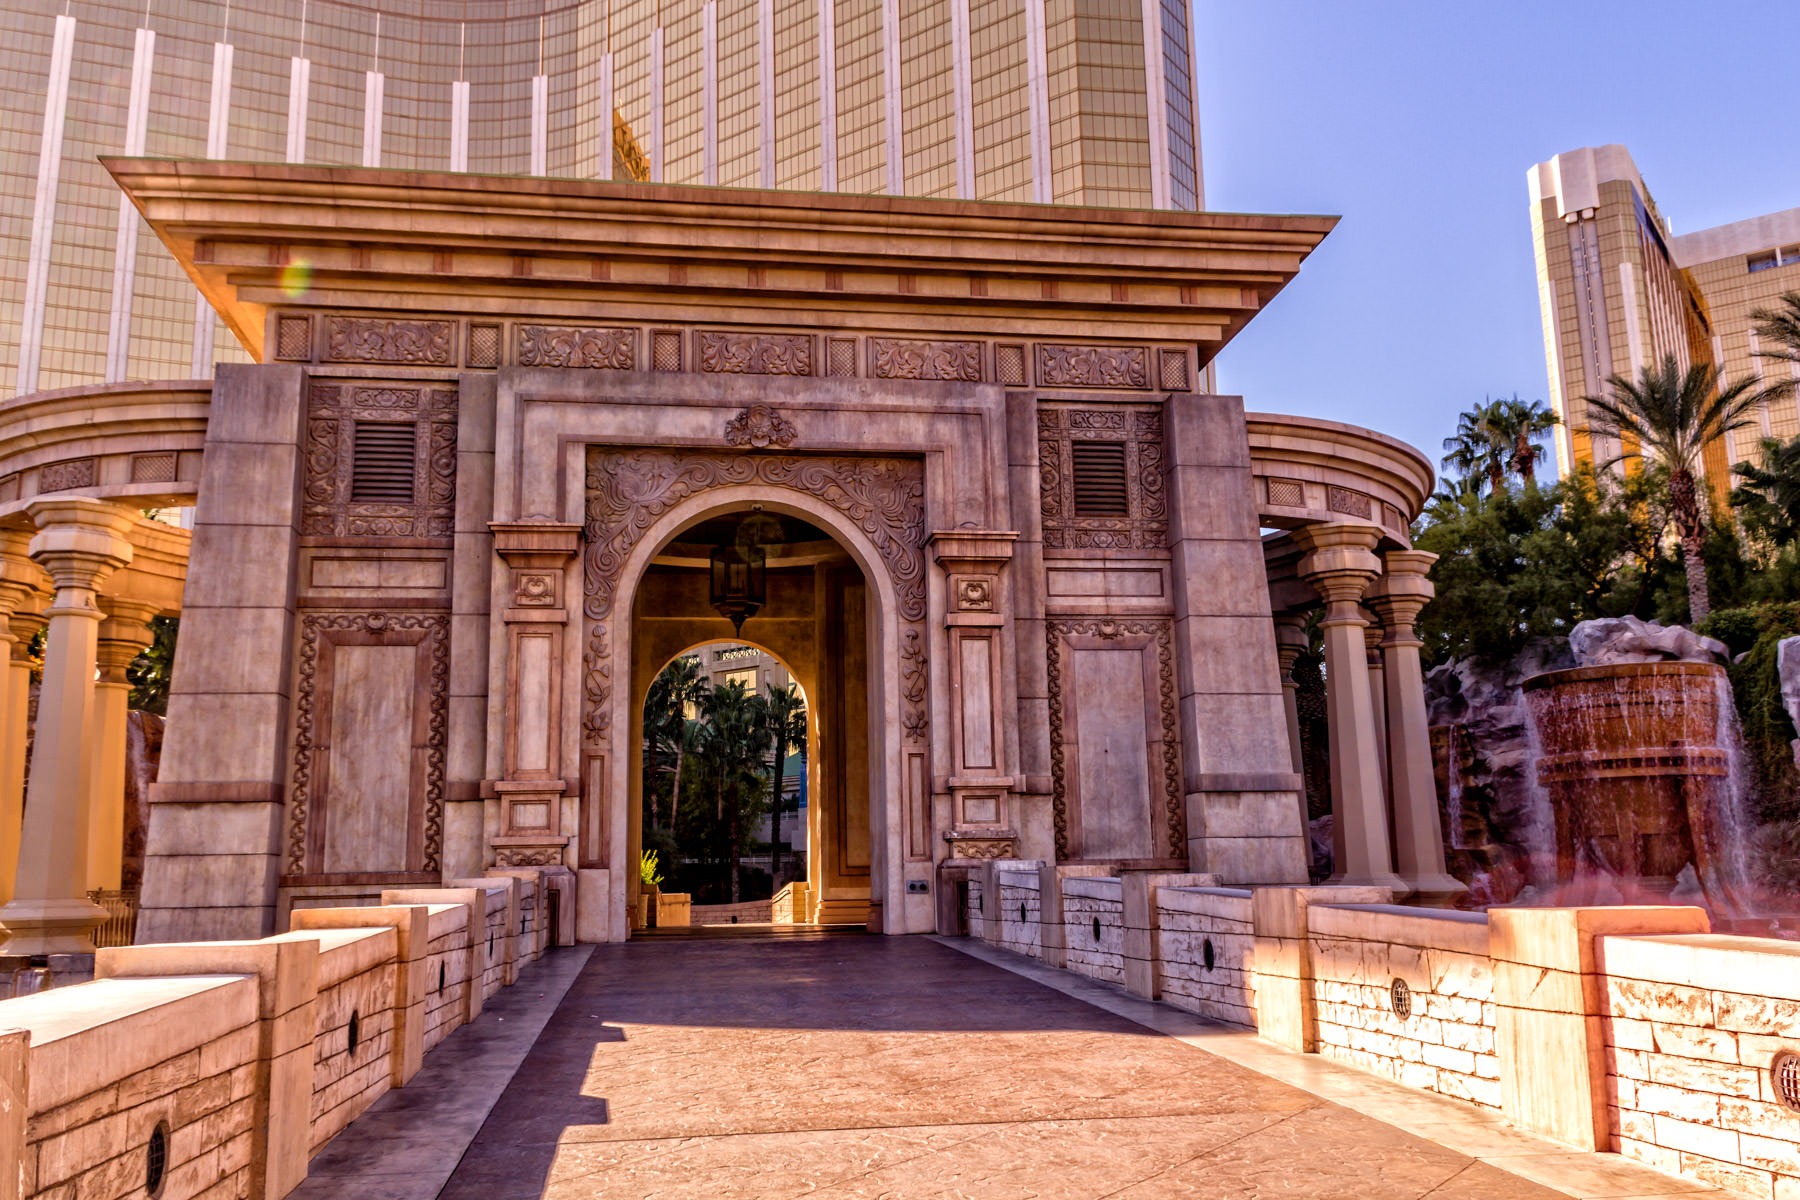 One of the ornate entrances to the Mandalay Bay Hotel & Casino, Las Vegas.